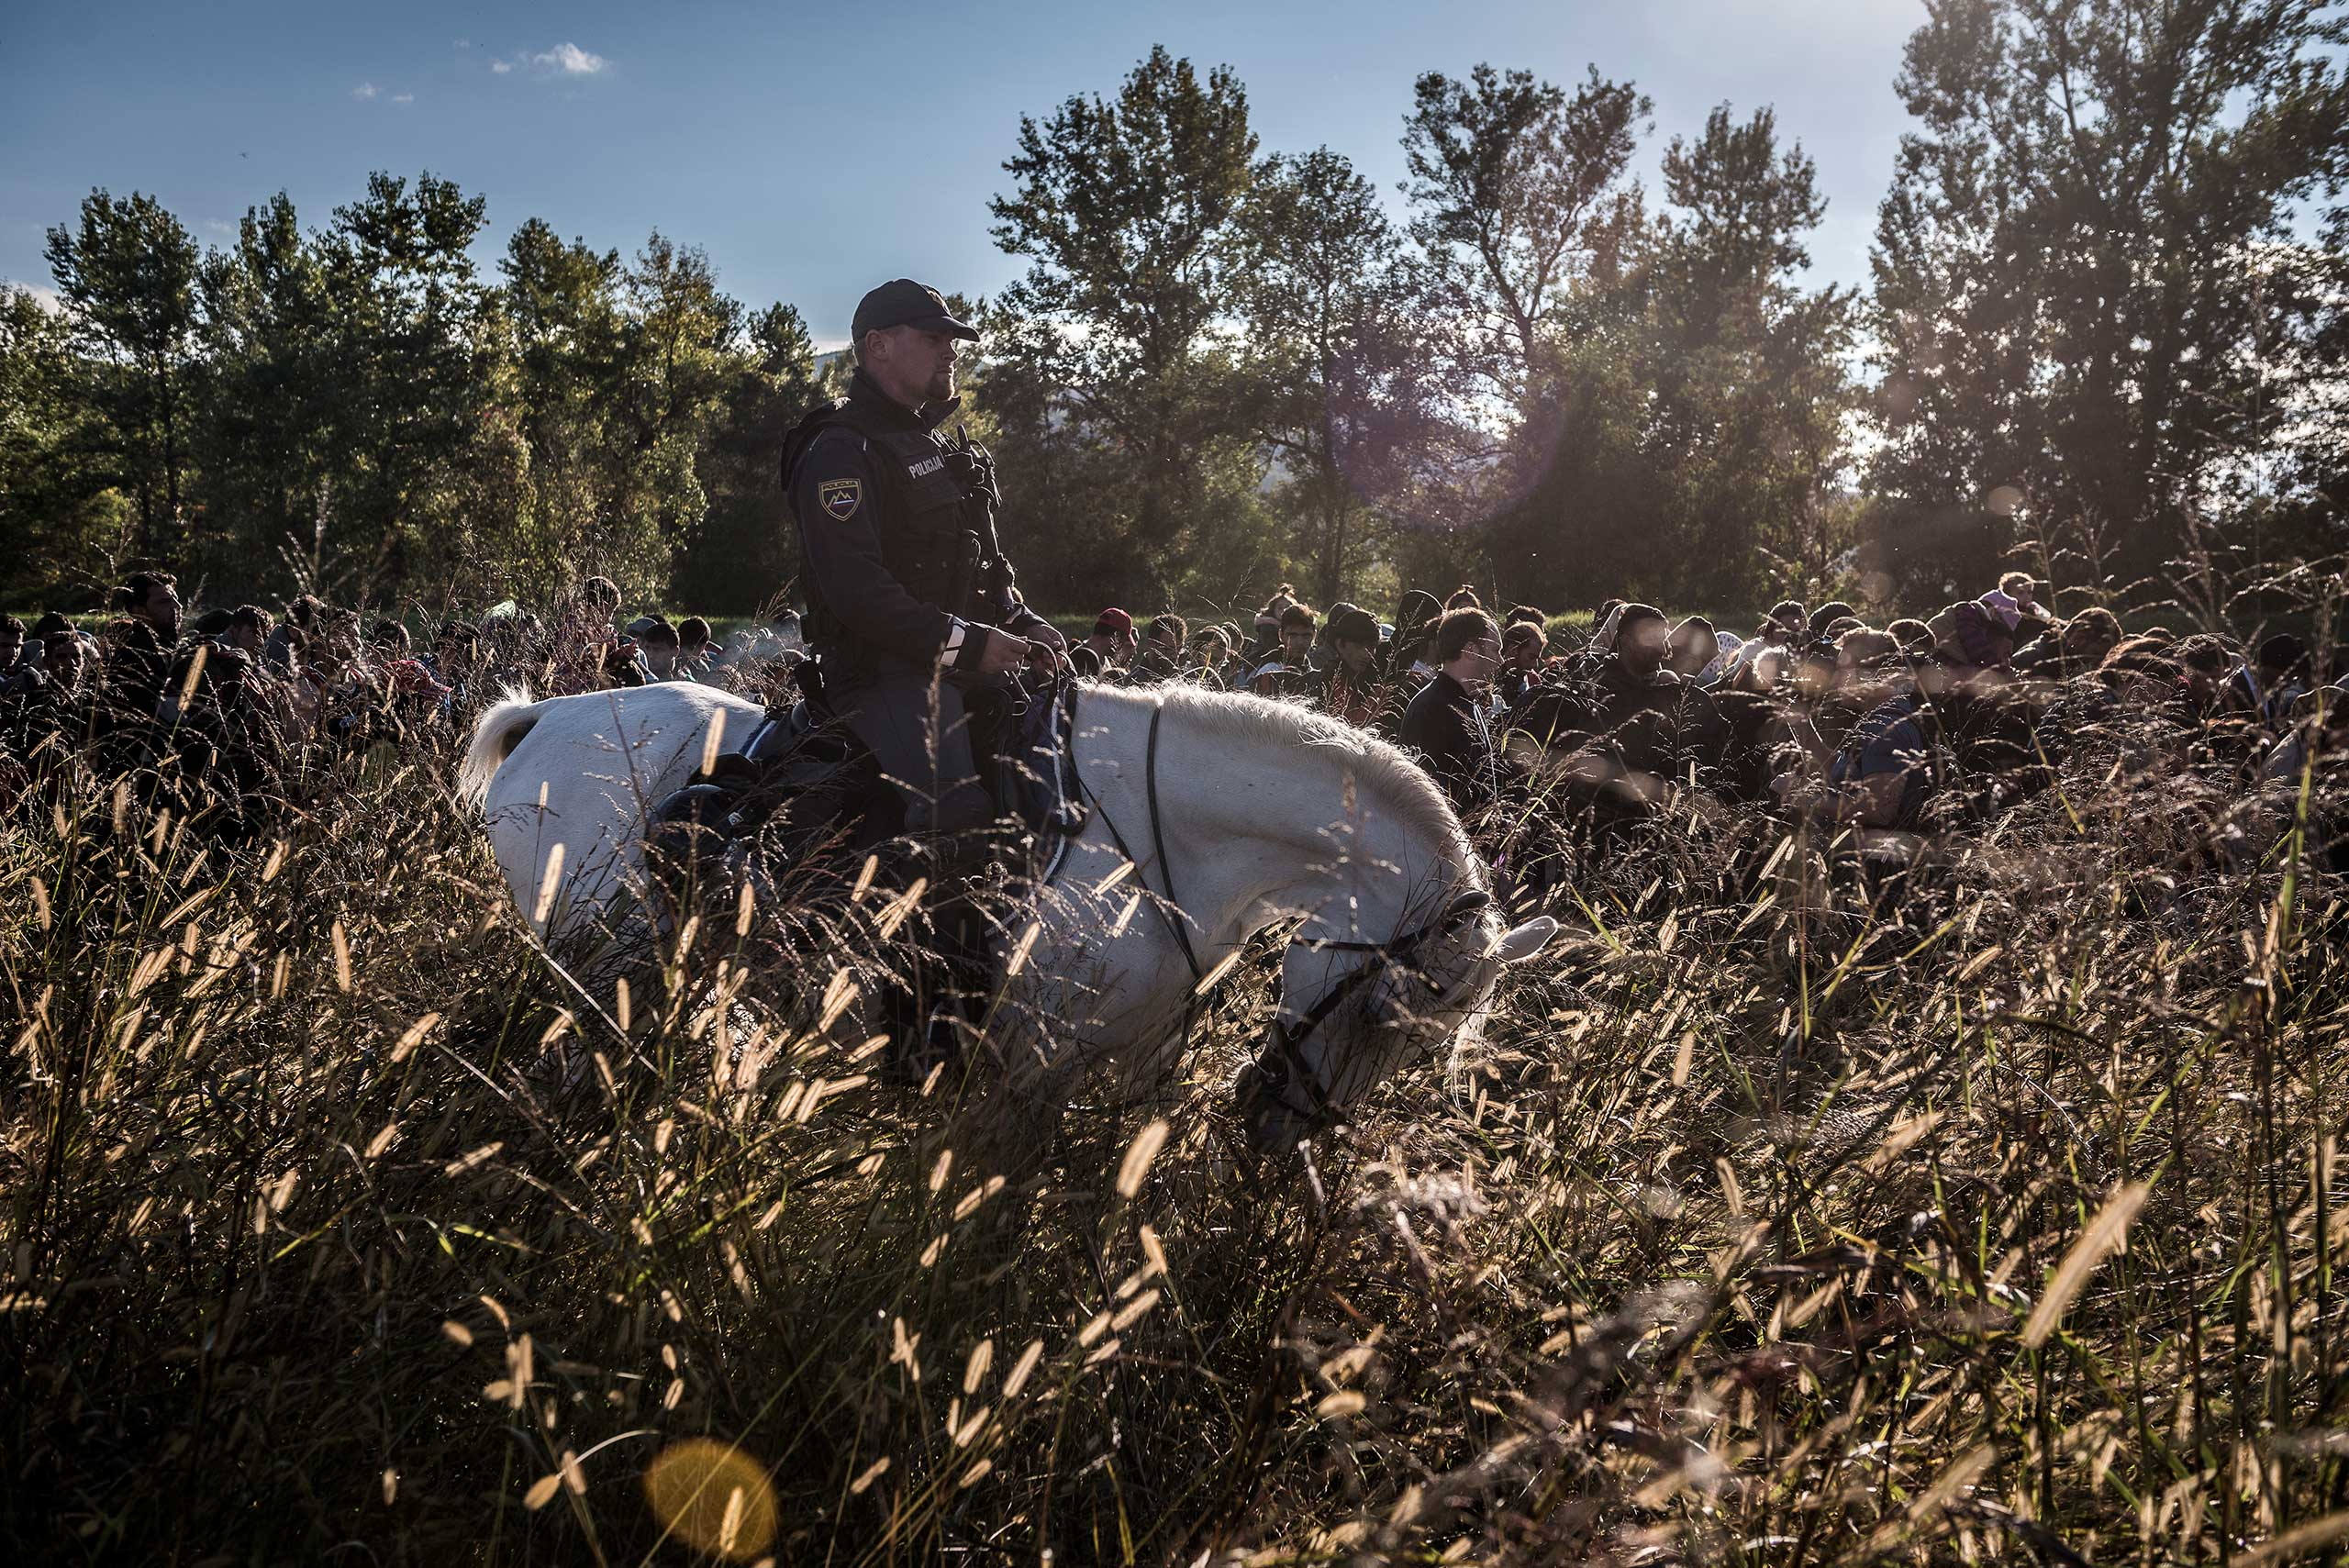 Police on horses escort hundreds of migrants after they crossed from Croatia in Dobova, Slovenia, Tuesday October, 20, 2015.